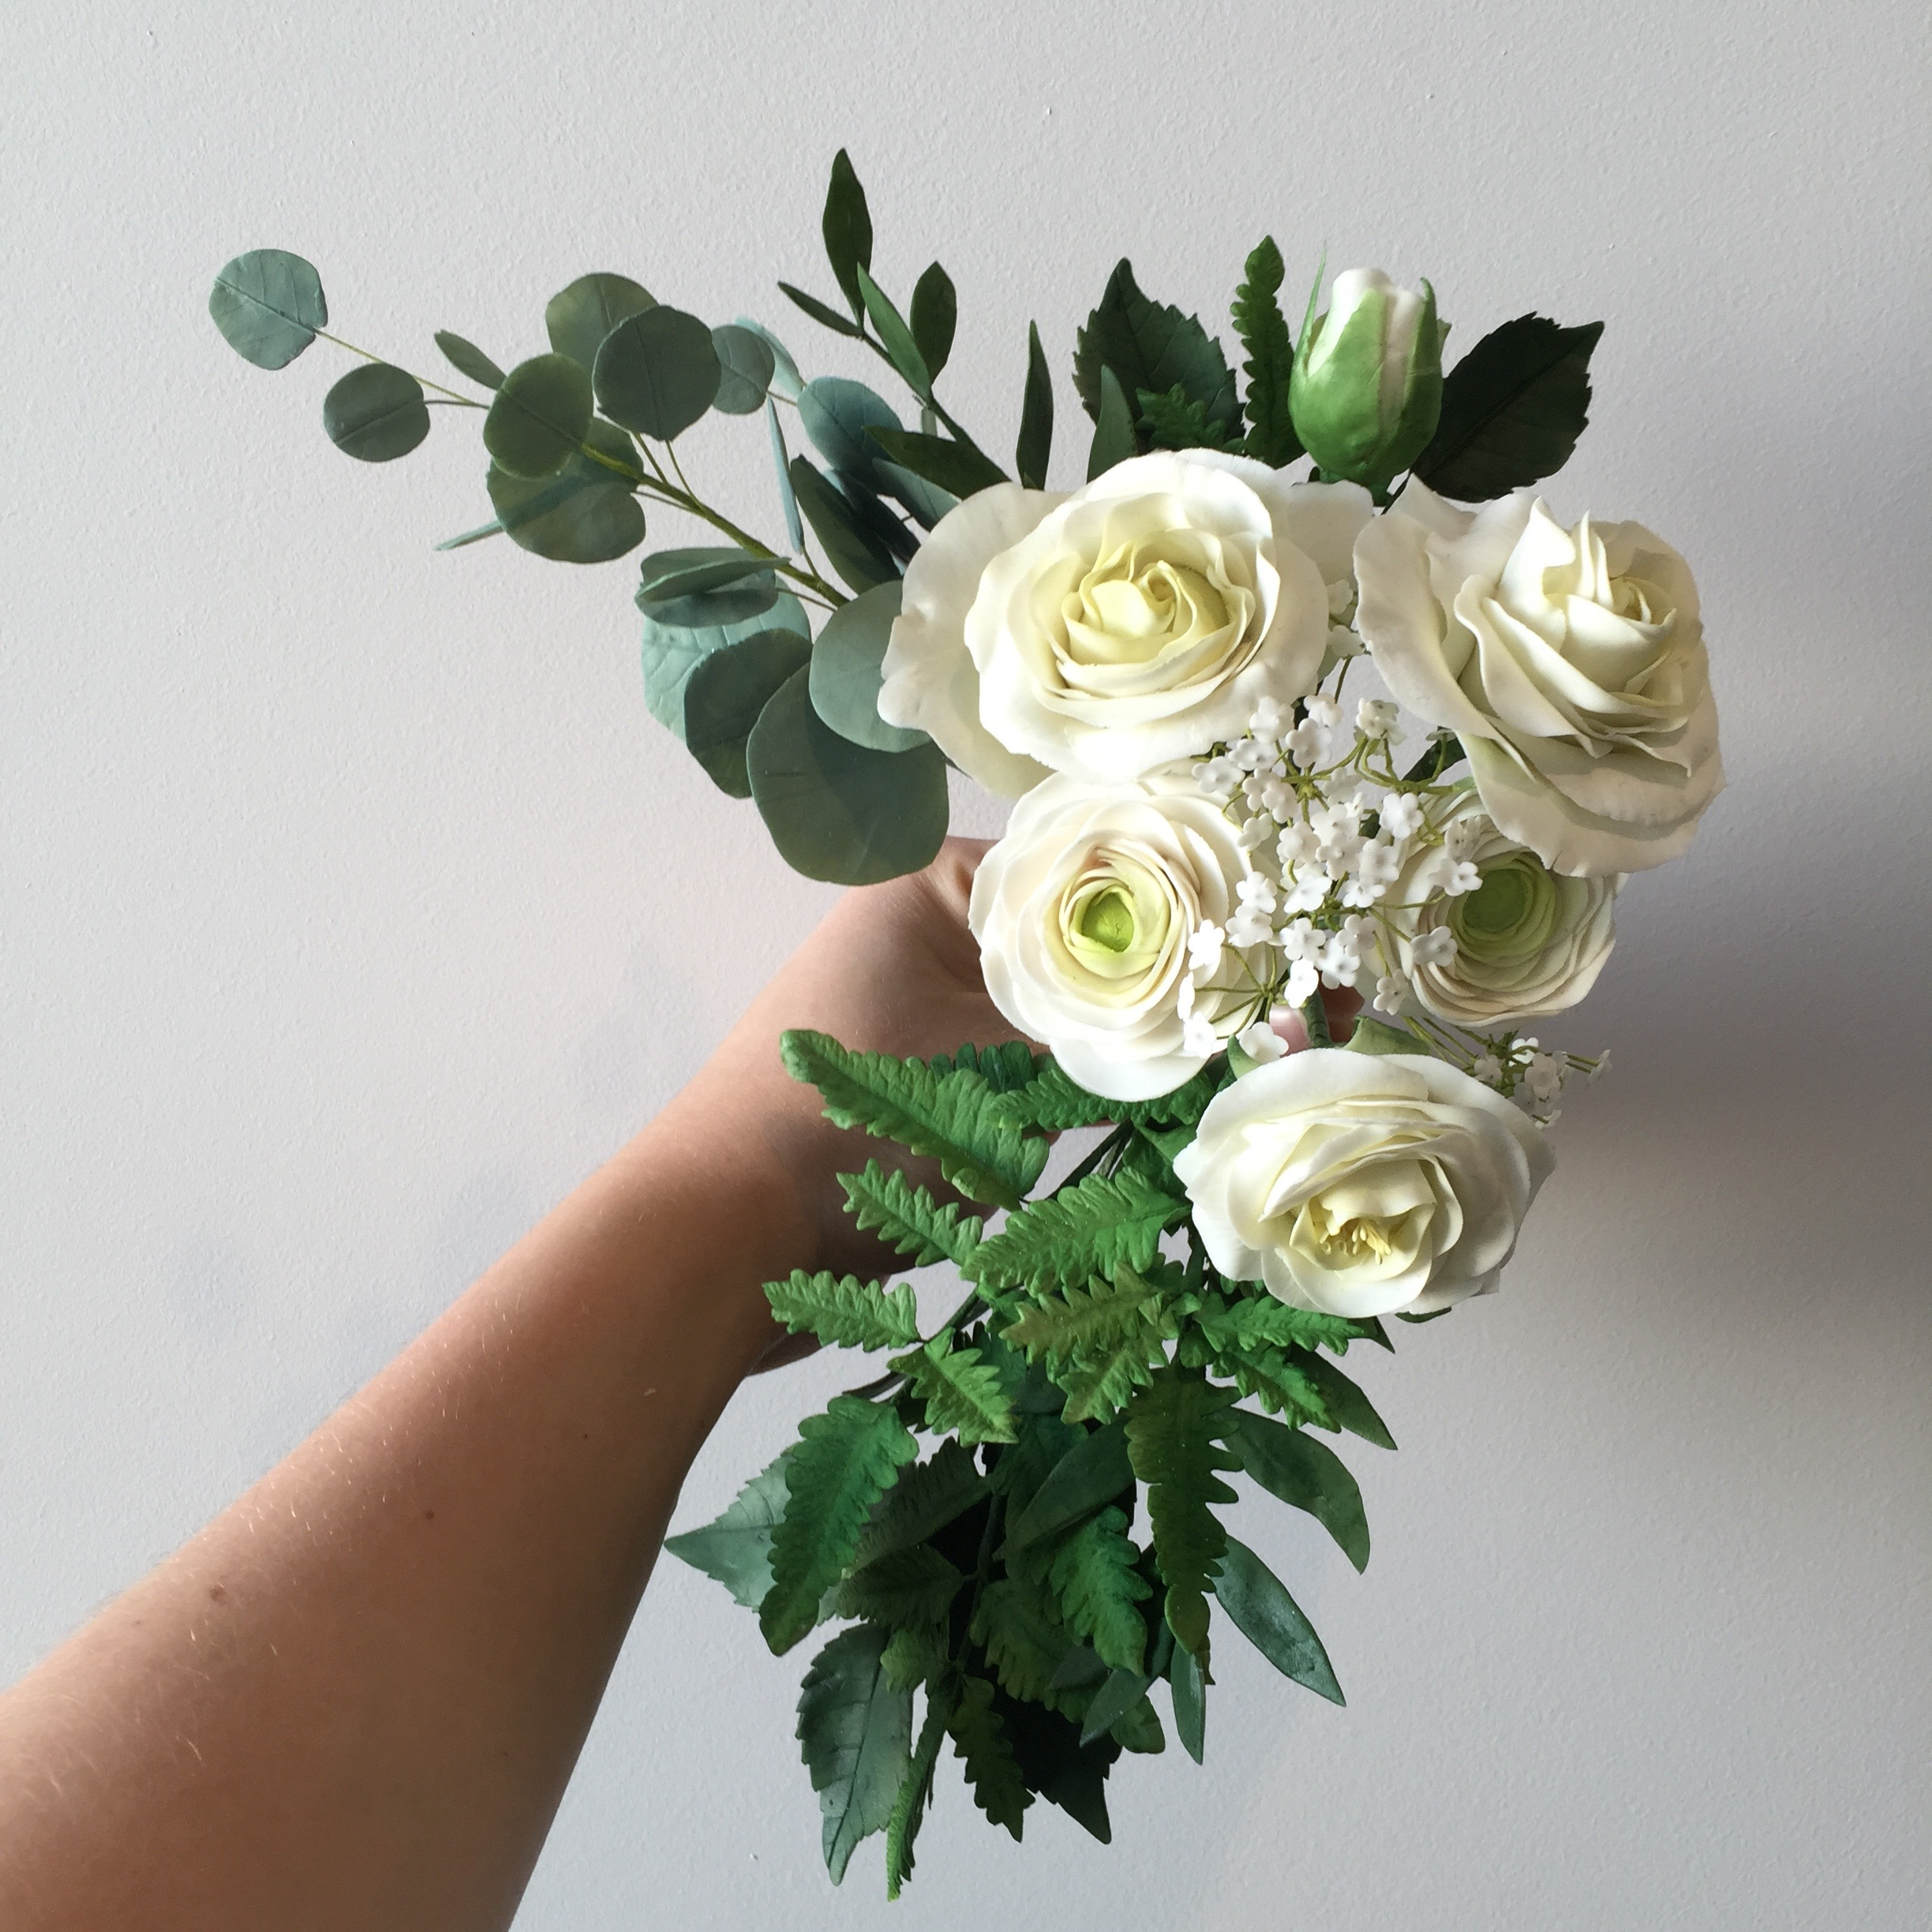 Sugar flower bouquet of white garden roses